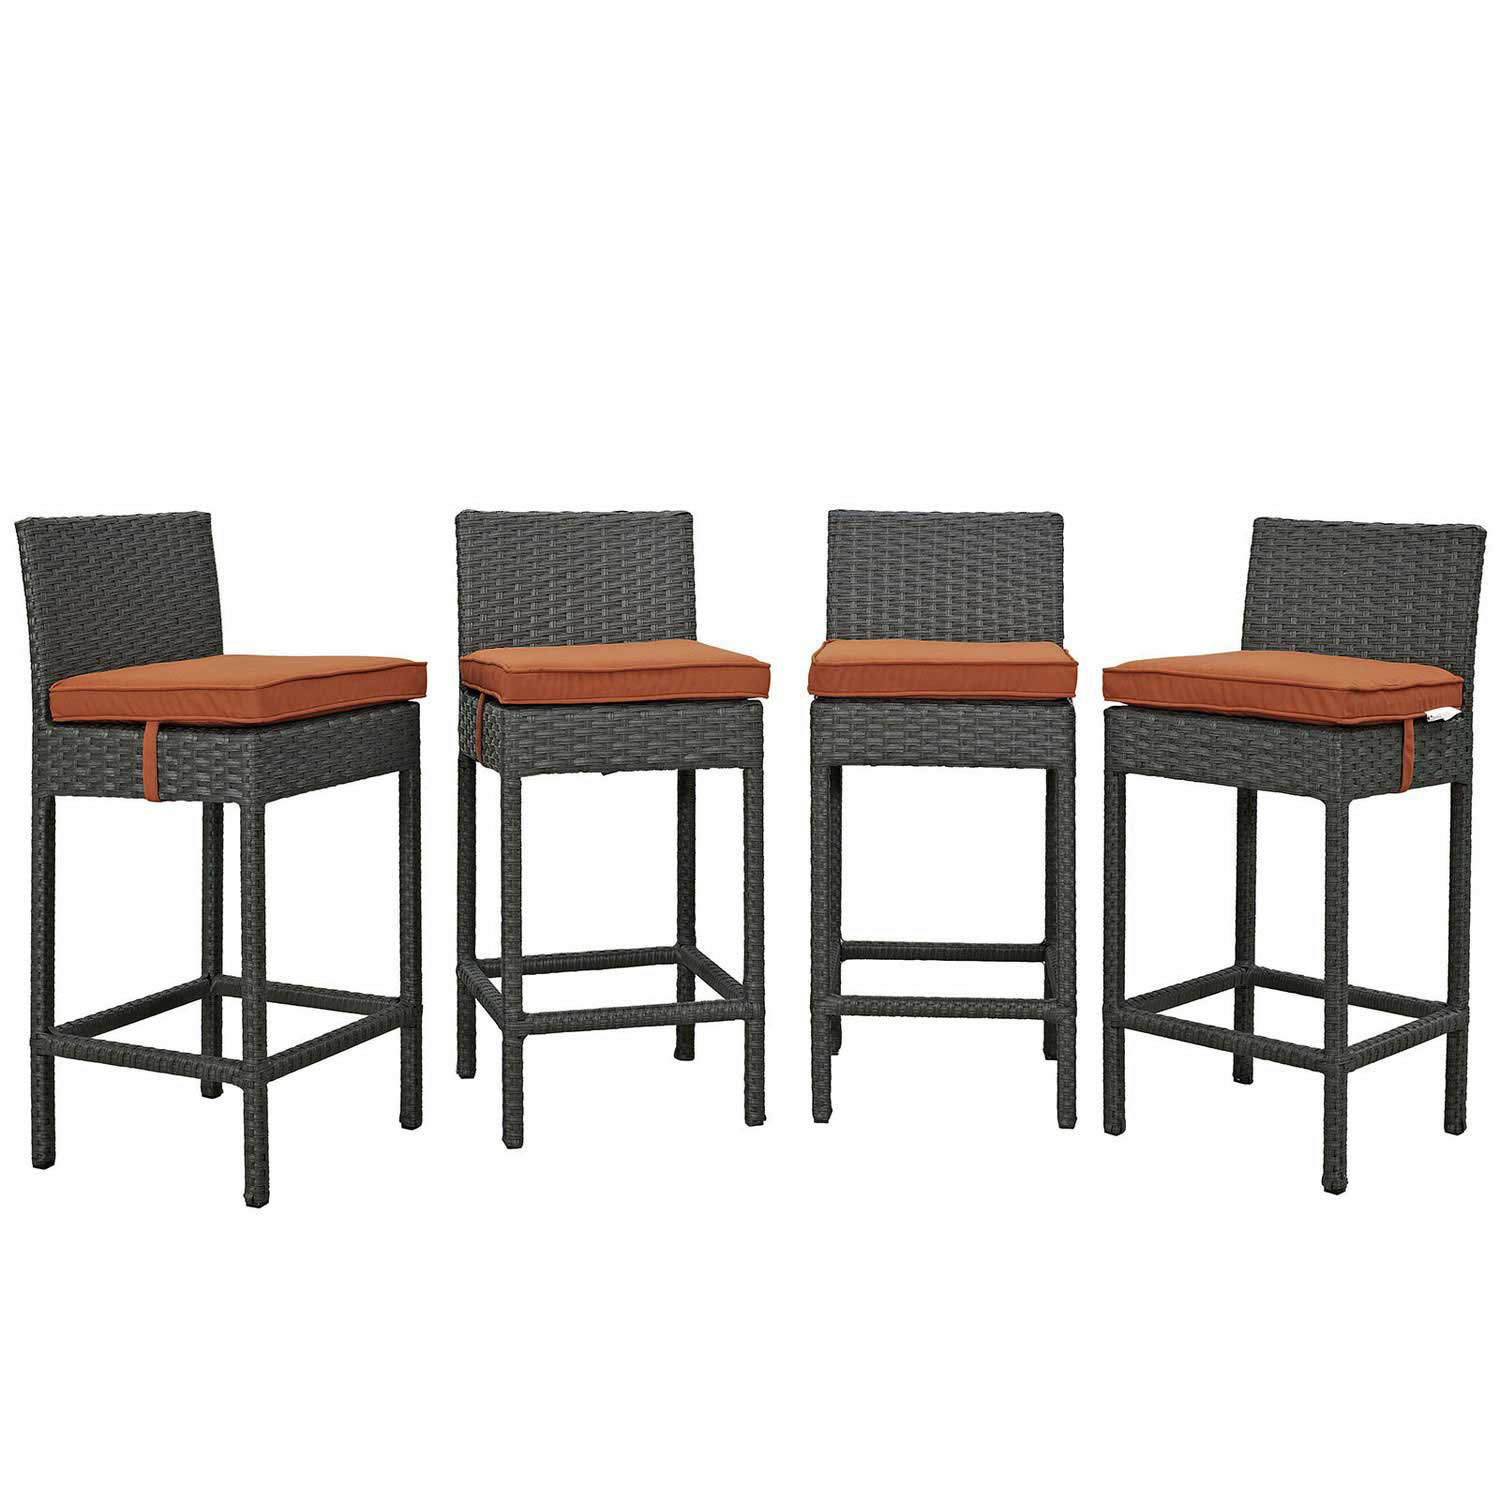 Modway Sojourn 4 Piece Outdoor Patio Sunbrella Pub Set - Canvas Tuscan